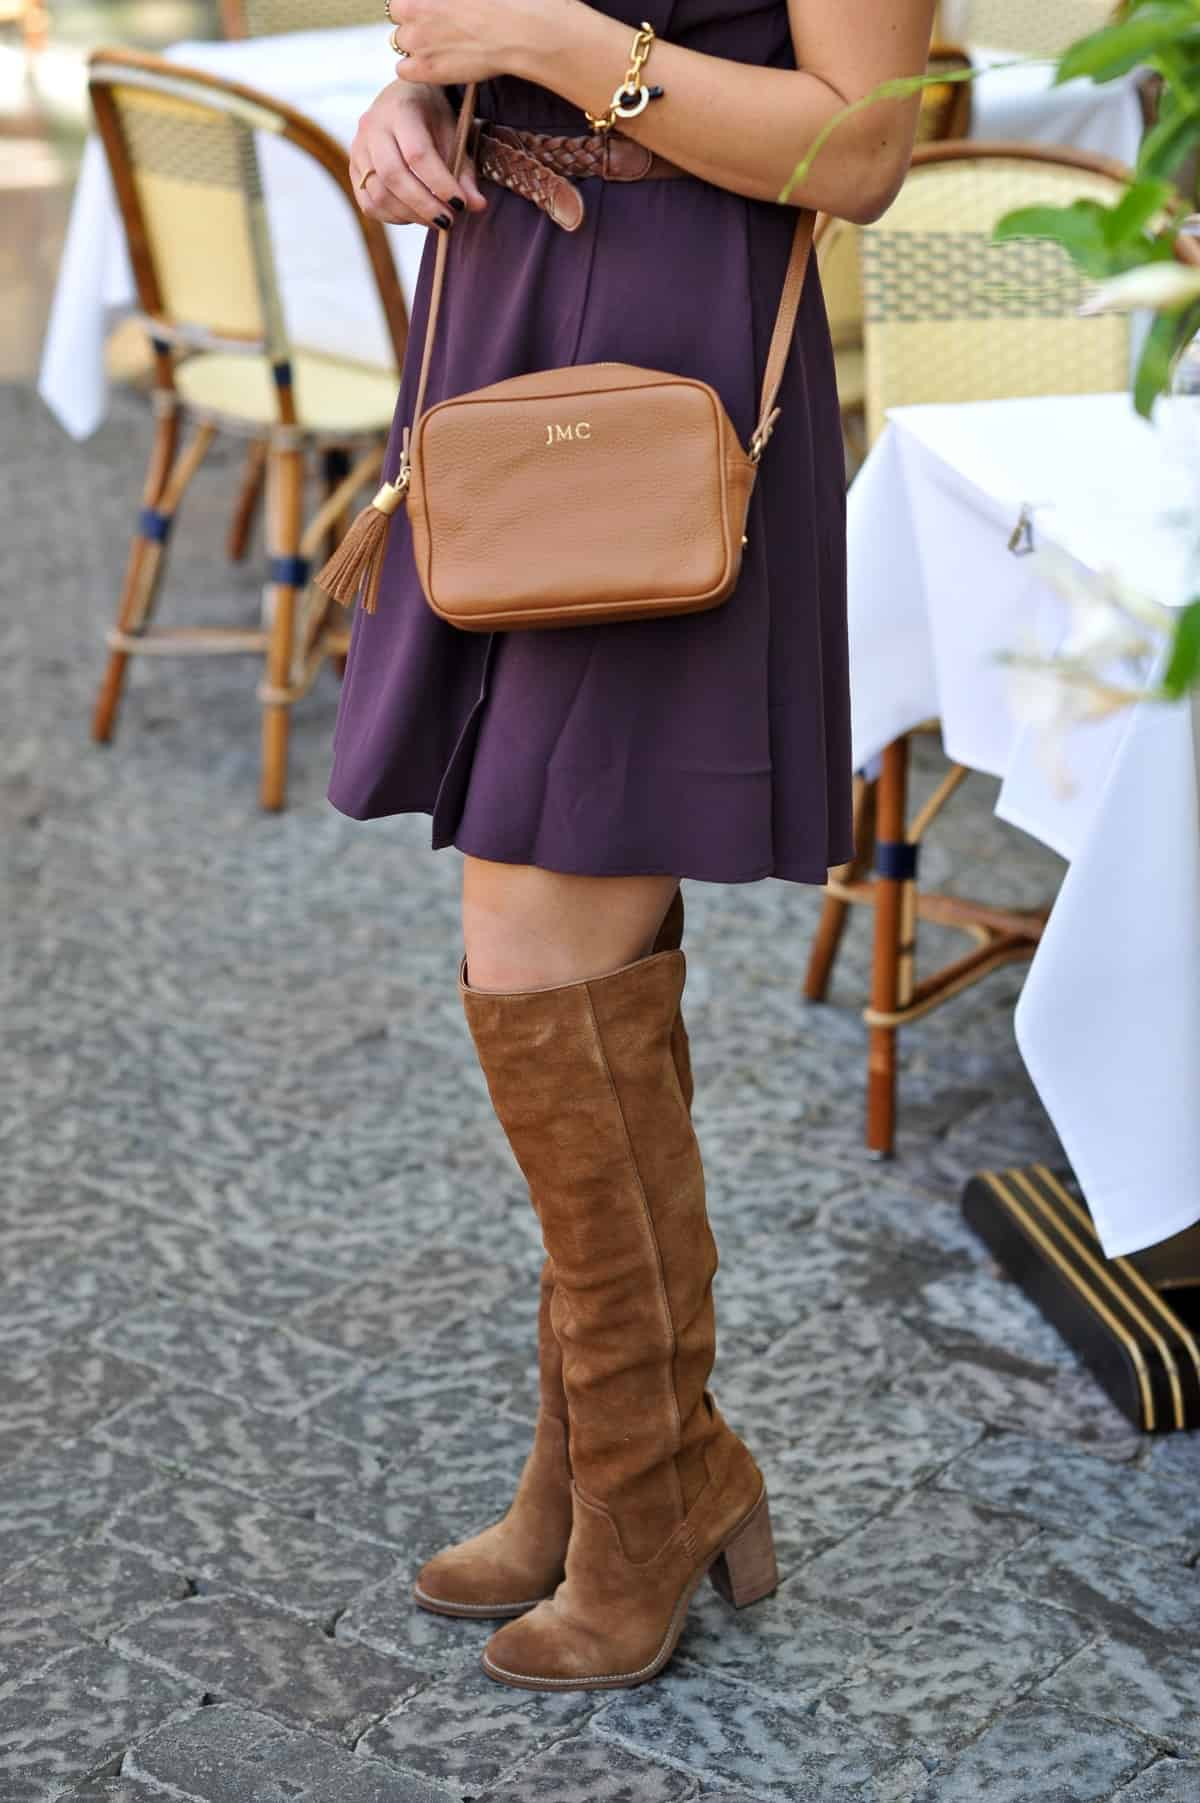 Over the knee boots and a mini dress - My Style Vita @mystylevita